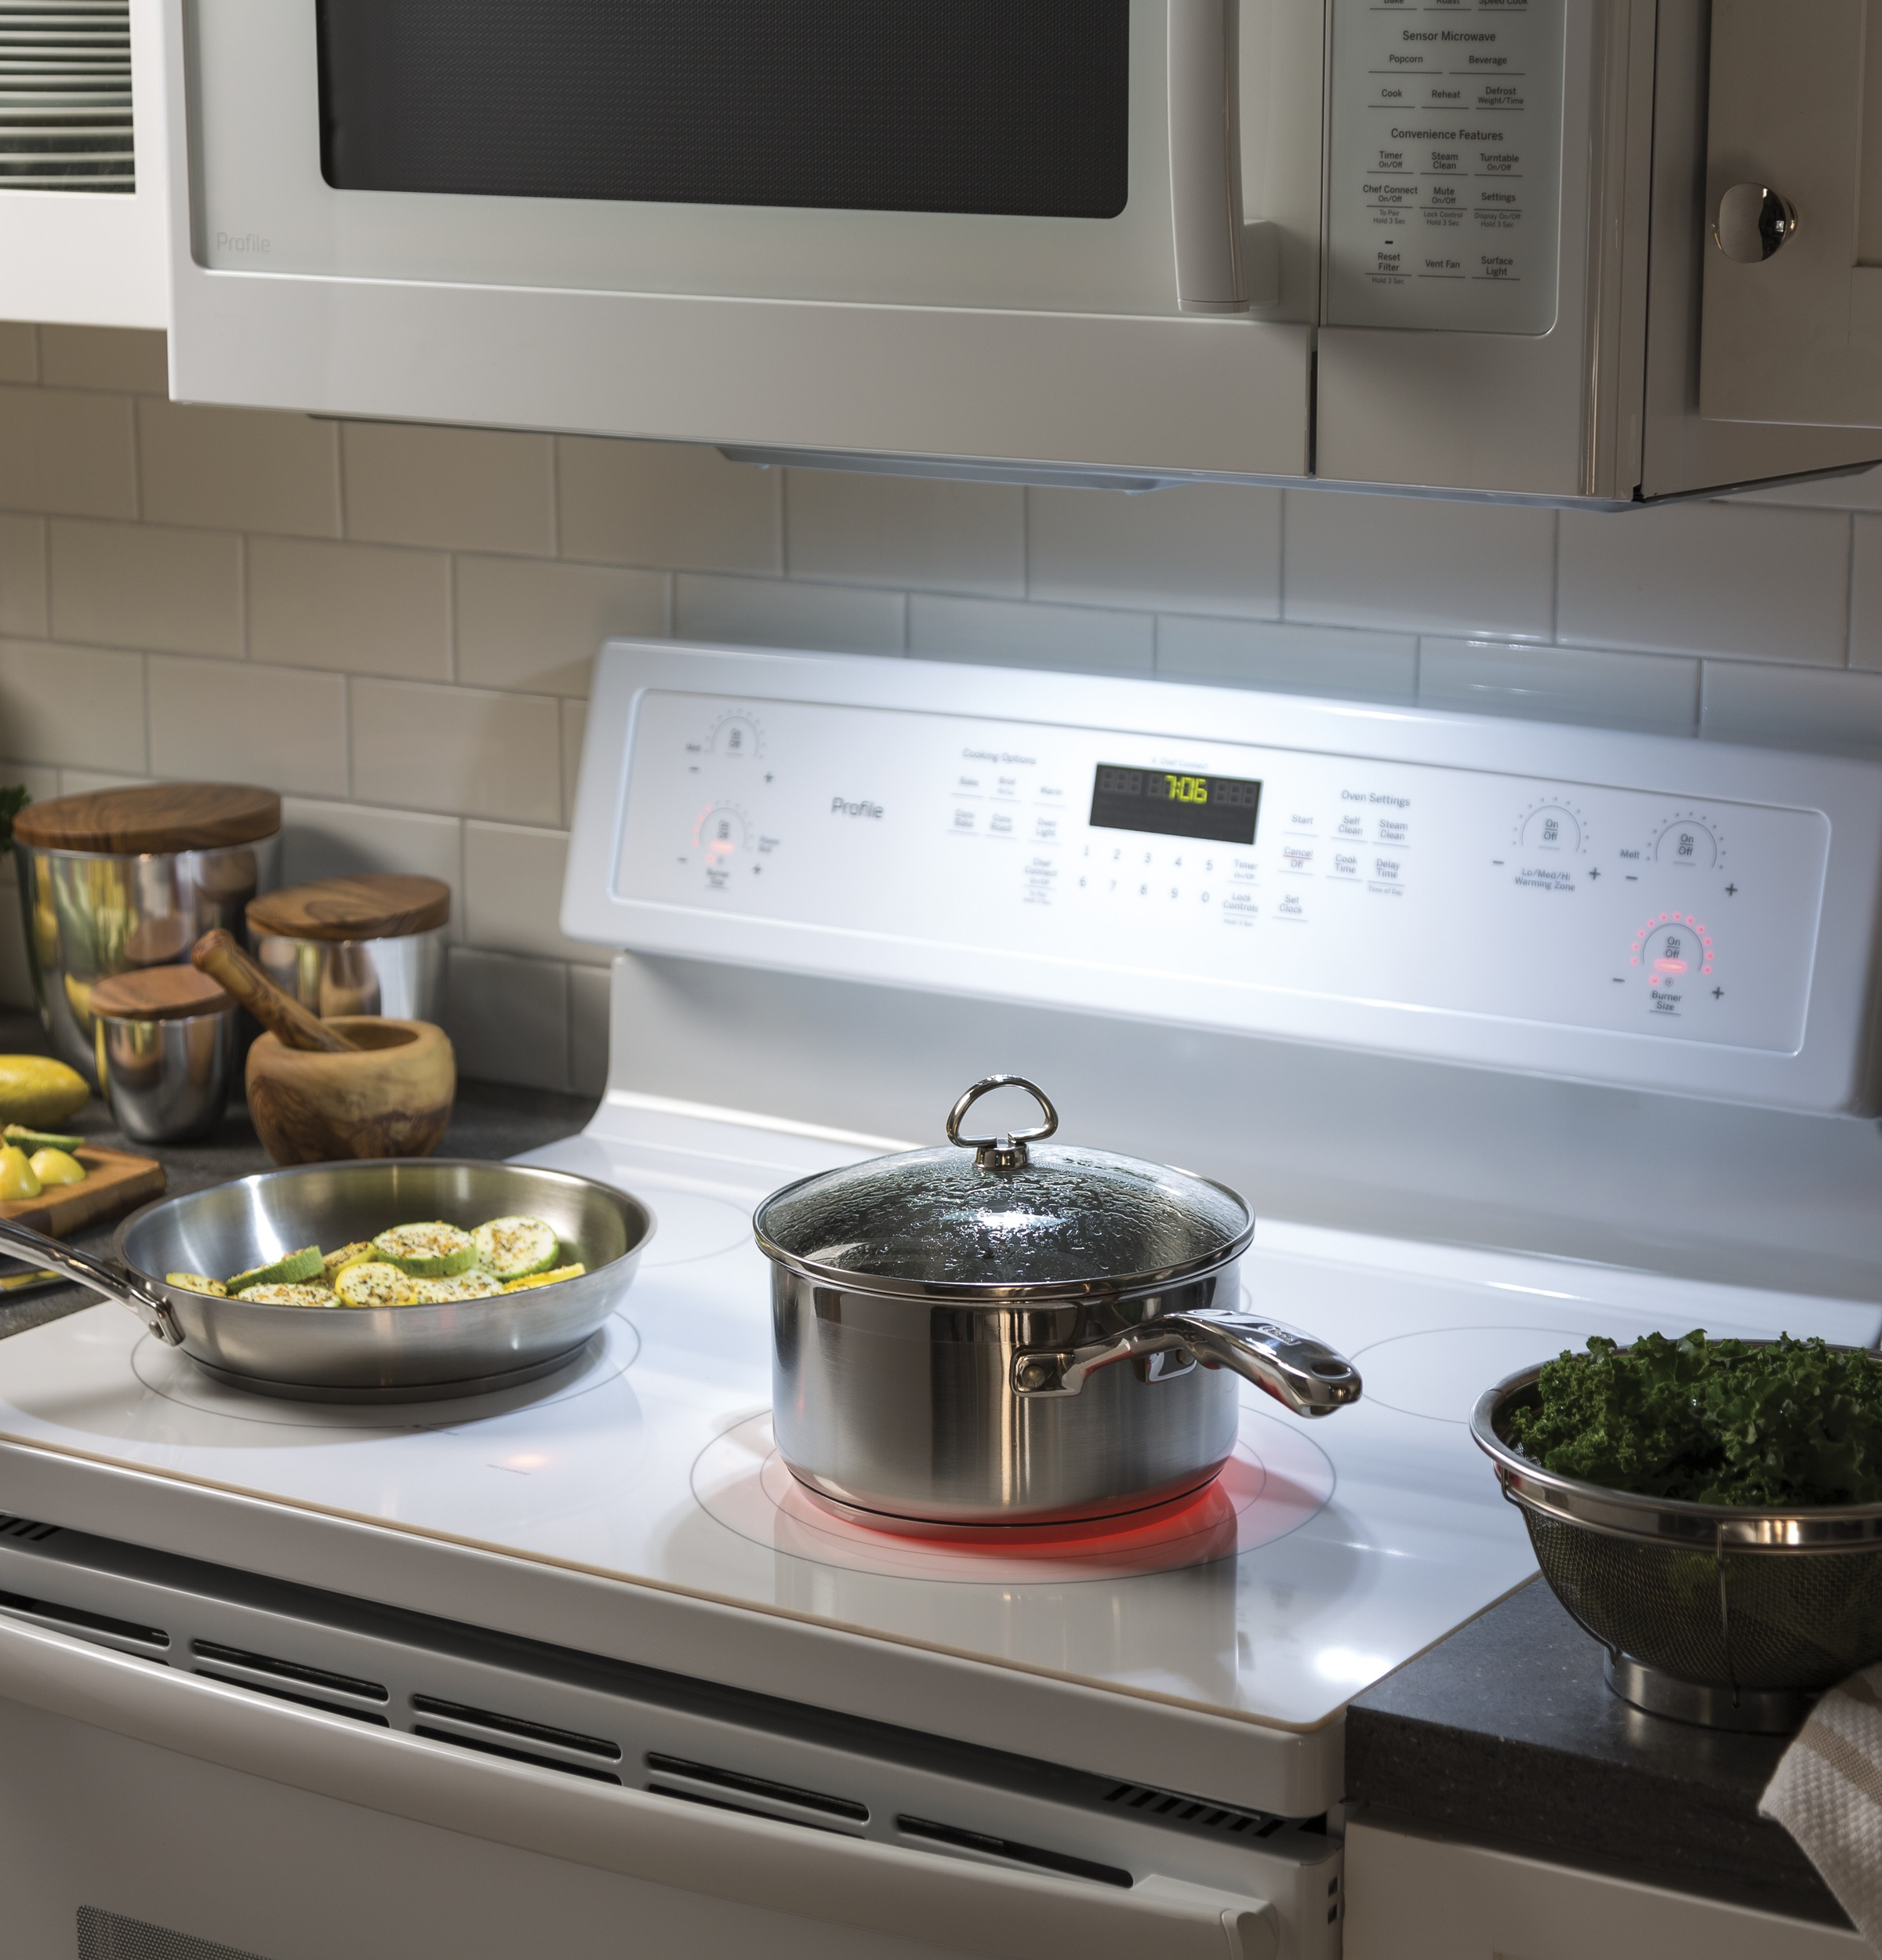 Model: PVM9179DKWW | GE Profile™ Series 1.7 Cu. Ft. Convection Over-the-Range Microwave Oven